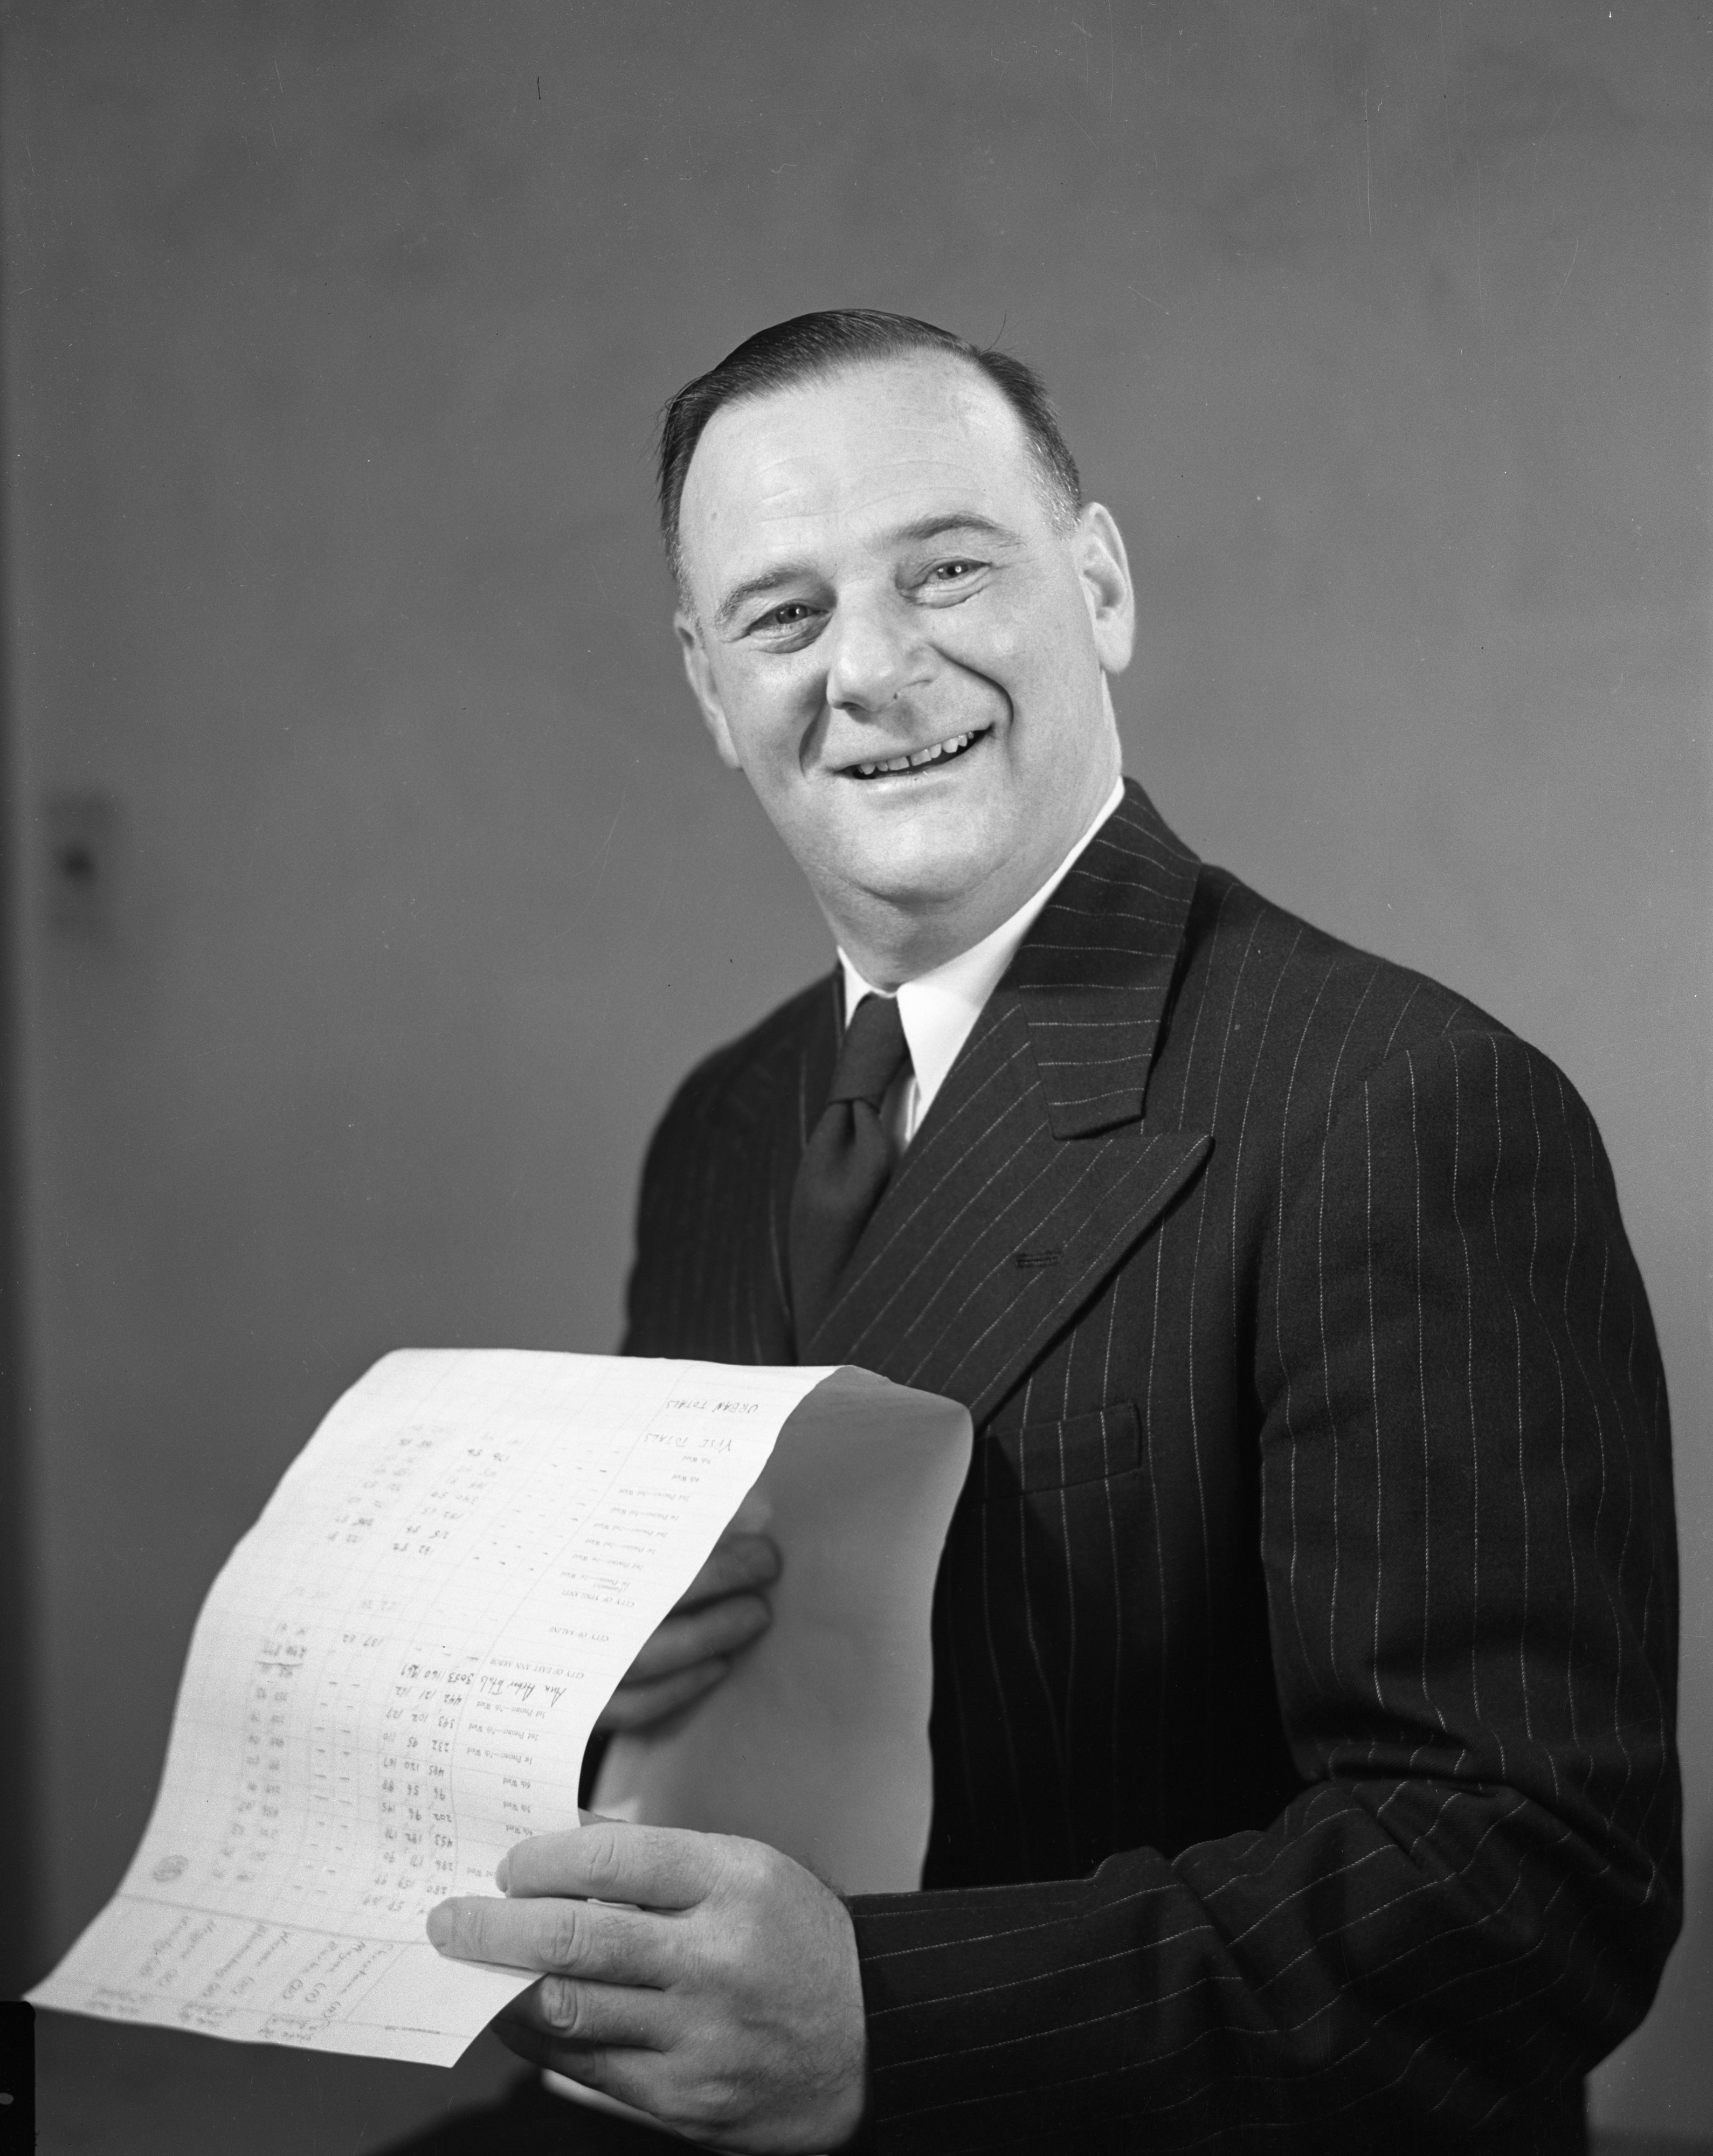 George Meader, Republican congressman from the Second Michigan District, November 1950 image